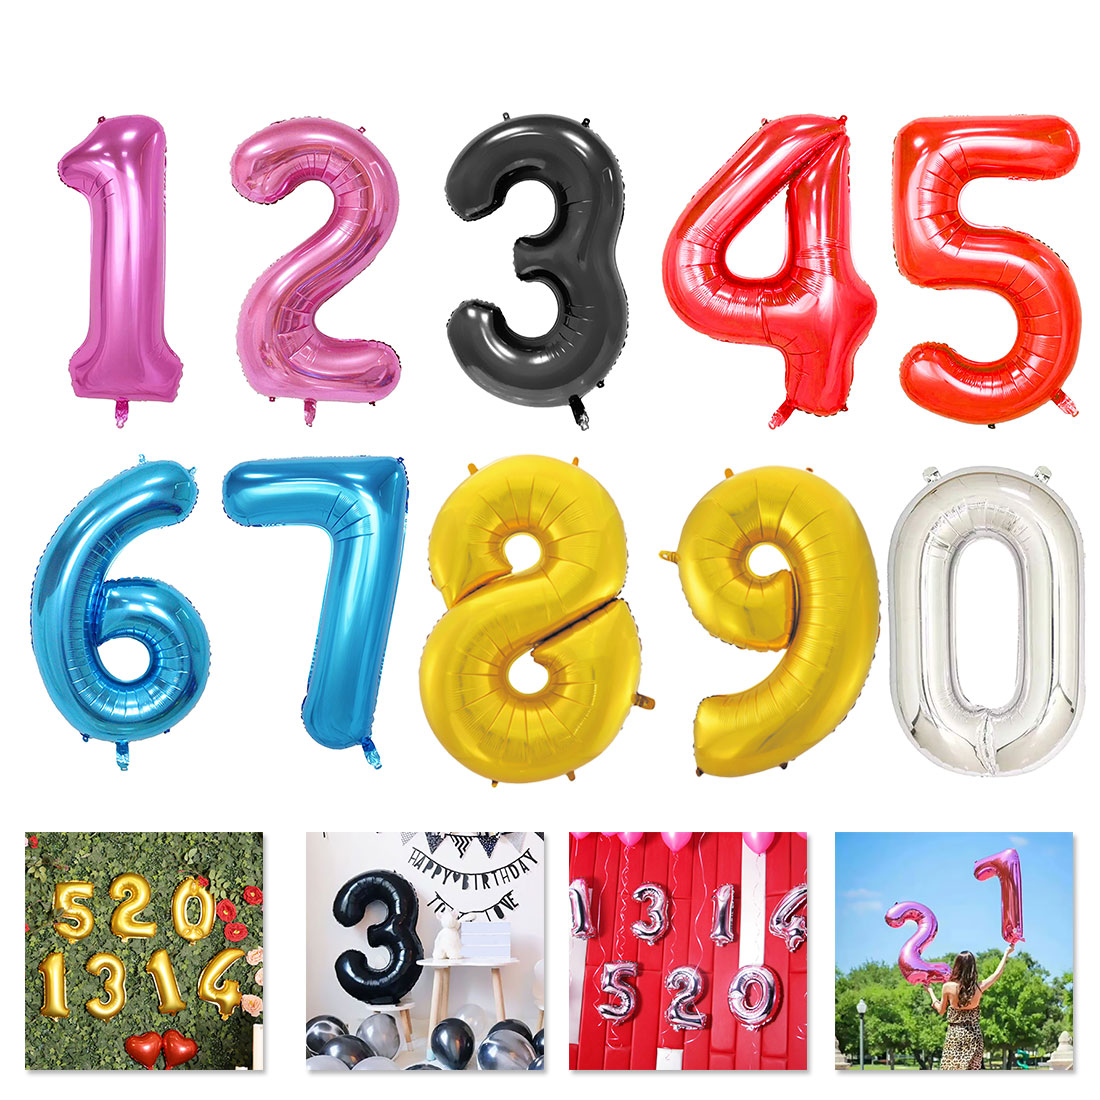 32 Inches Digit Foil Number Balloons inflatable Wedding Birthday Number Foil Balloon birthday party decorations